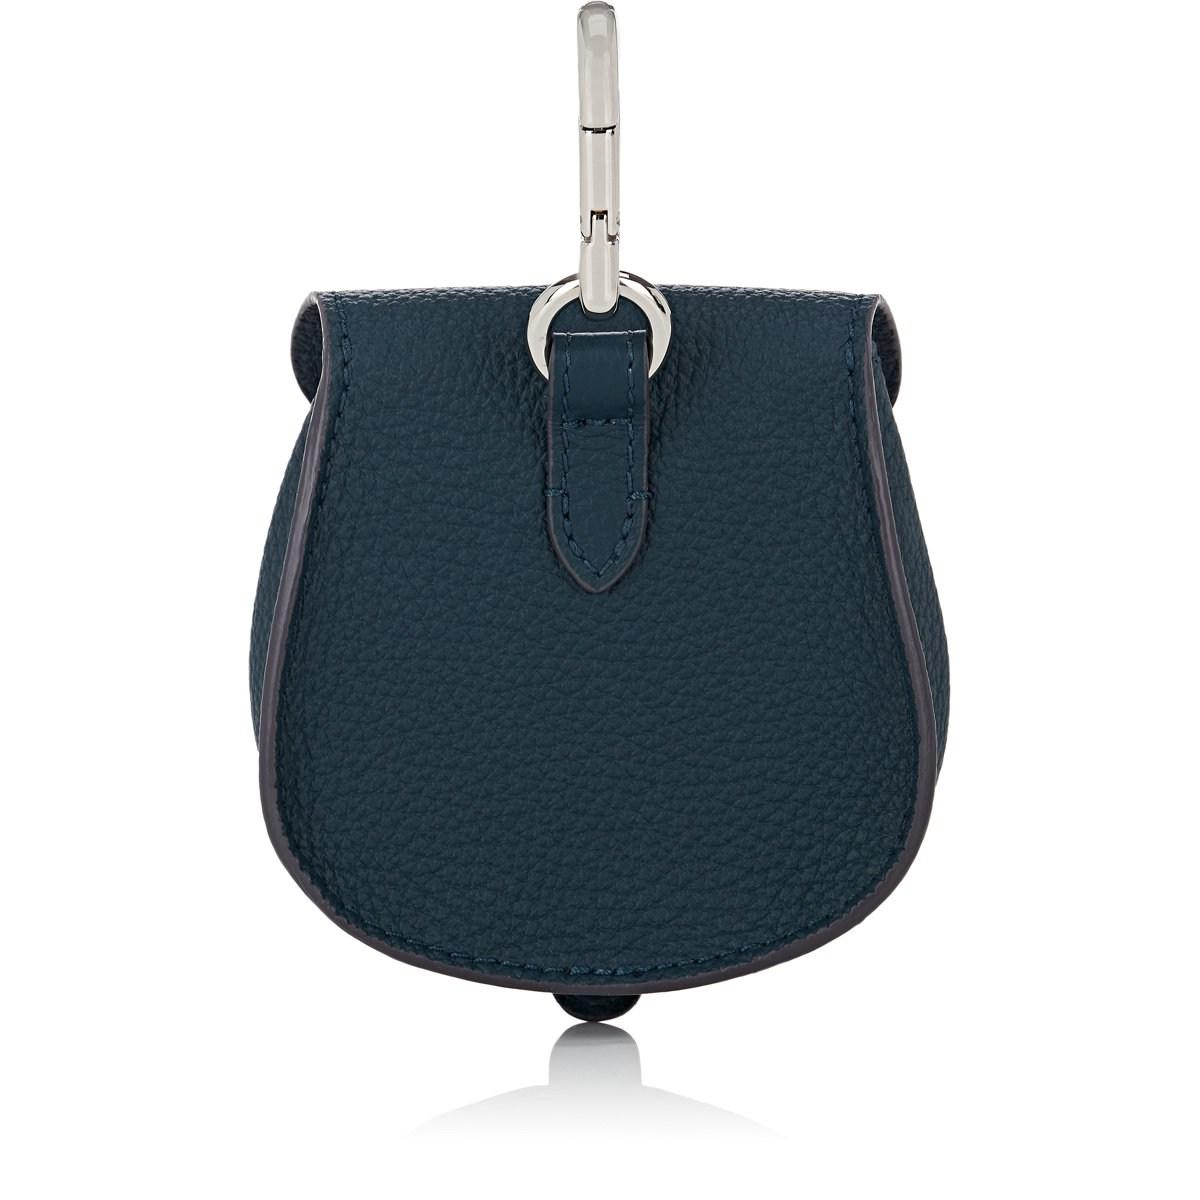 85231be9f8e Lyst - Fontana Milano 1915 Mimosa Mini Leather Pouch Bag Charm in Blue